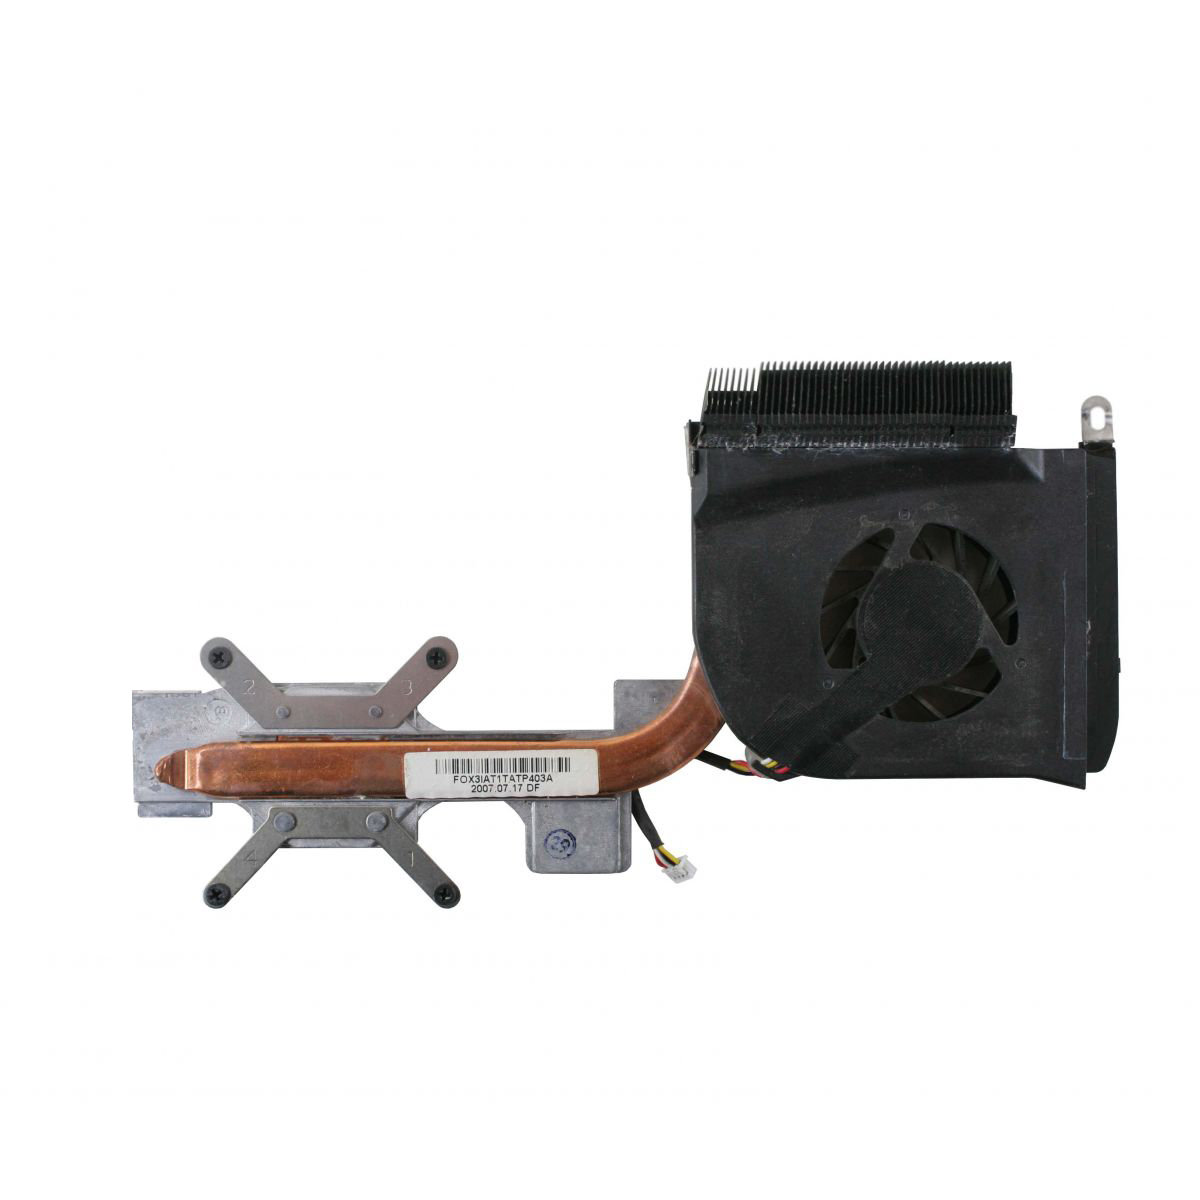 Cooler e Dissipador Notebook HP DV6000 451860-001